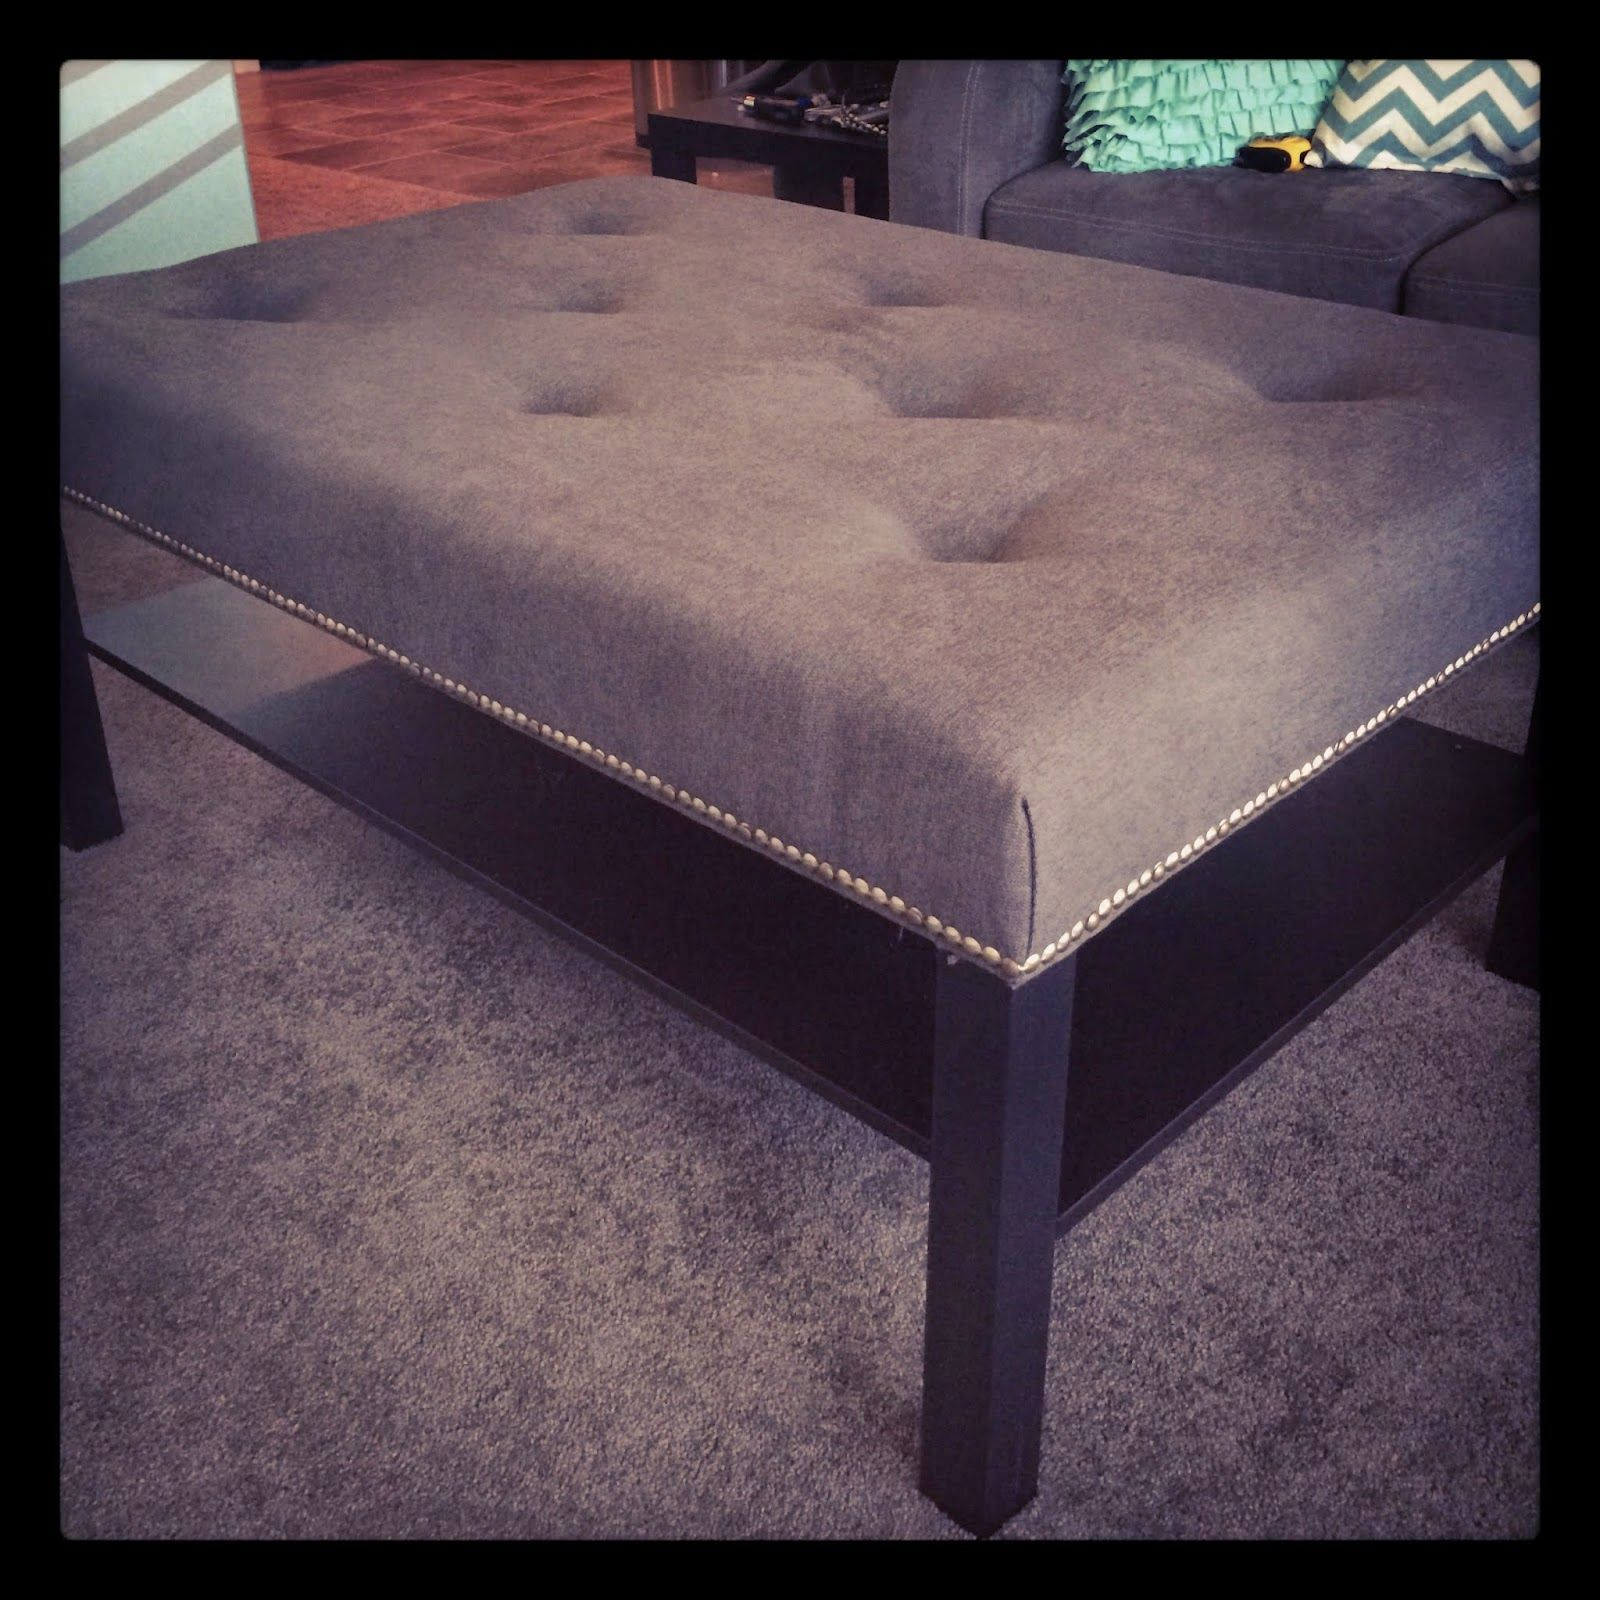 Merveilleux Ikea Coffee Table To Tufted Ottoman Tutorial